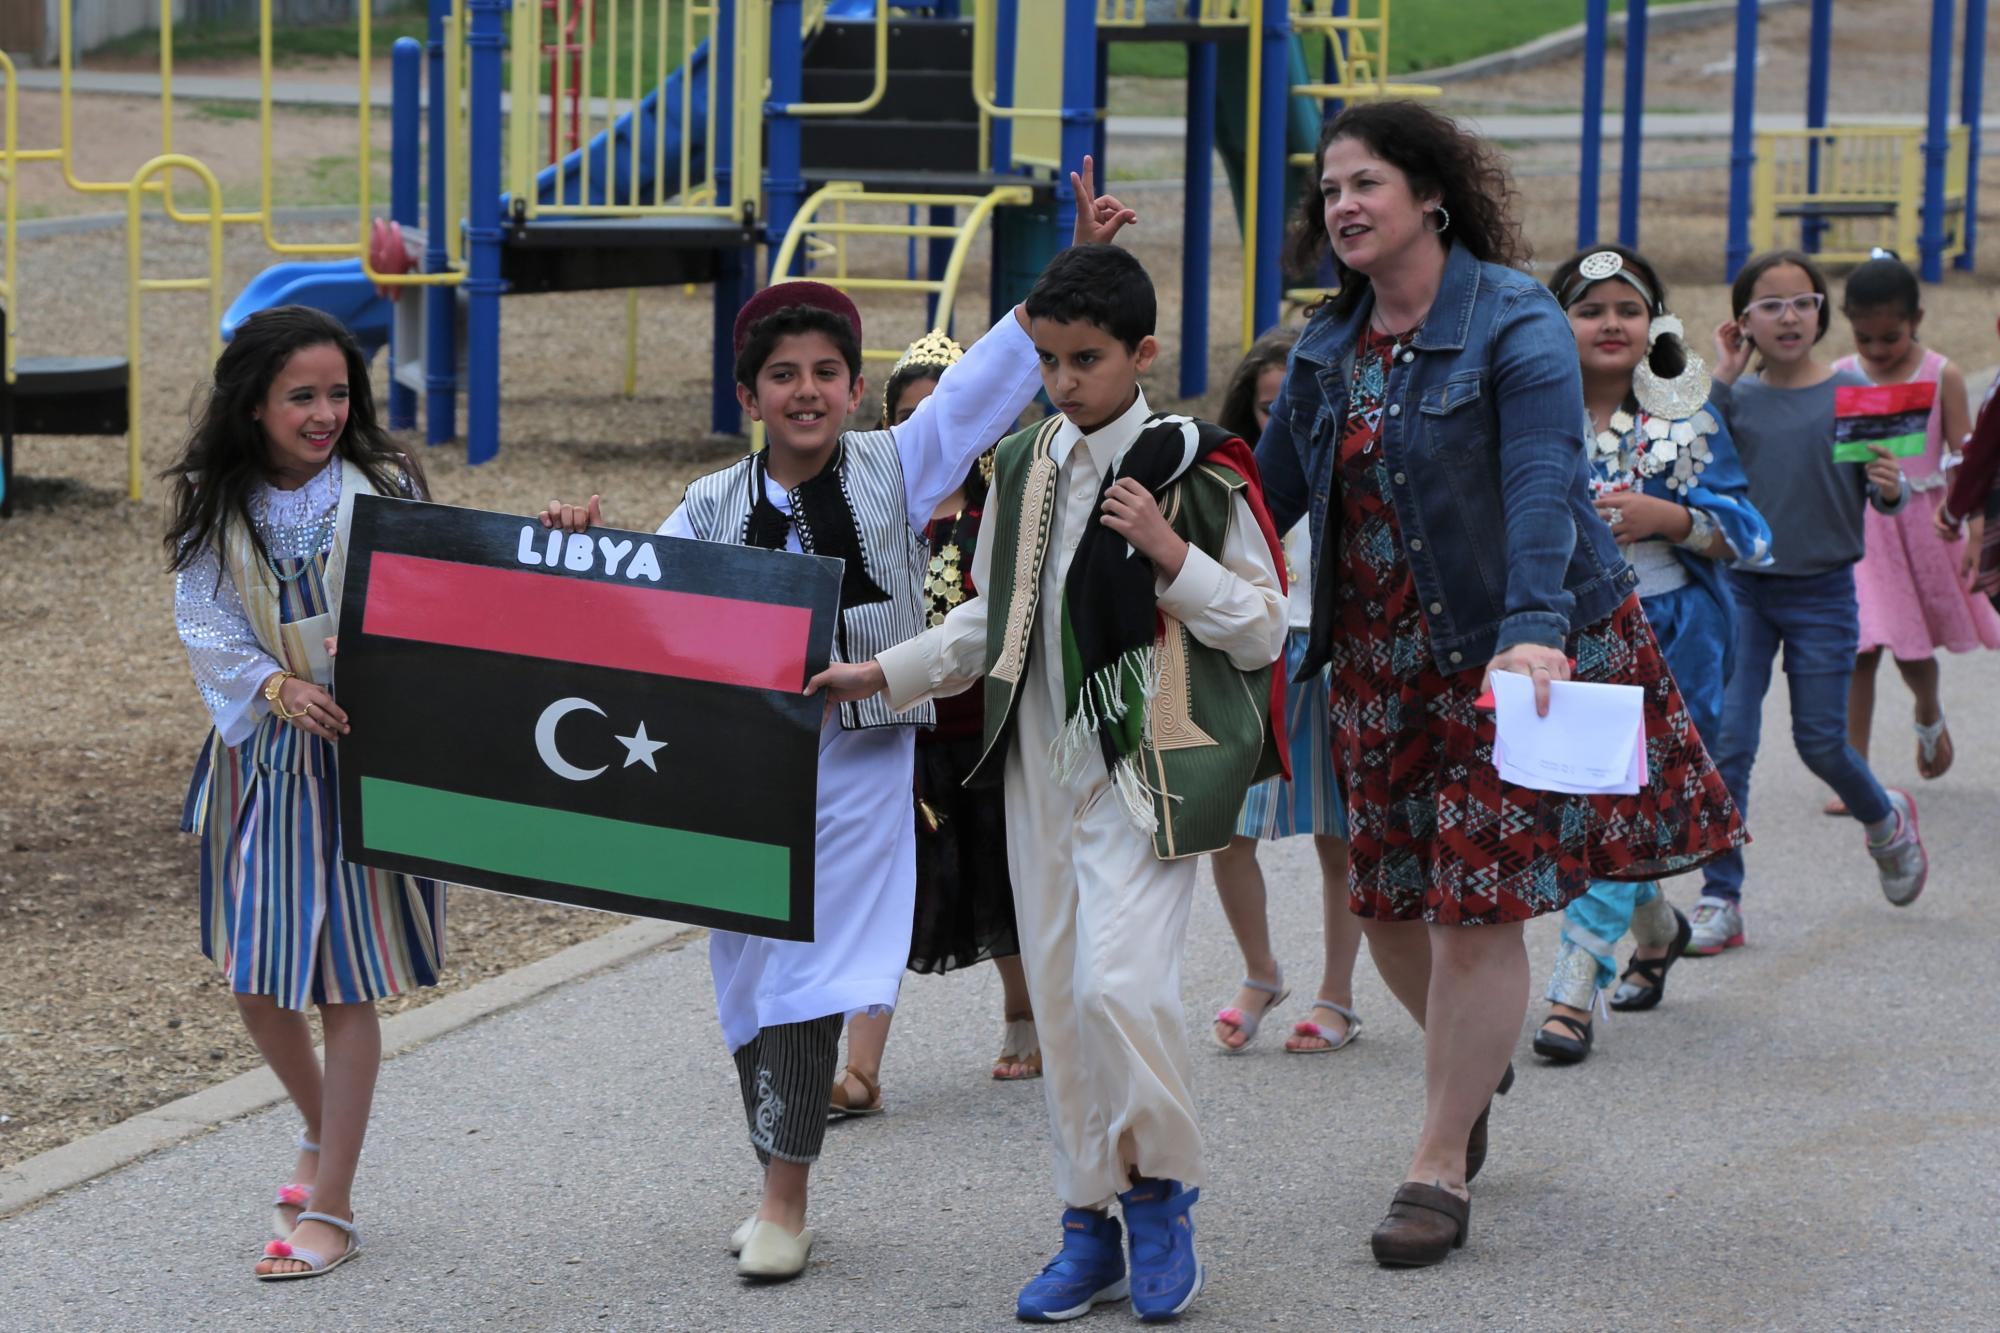 A group of elementary students wearing cultural dress walk in a parade outside.